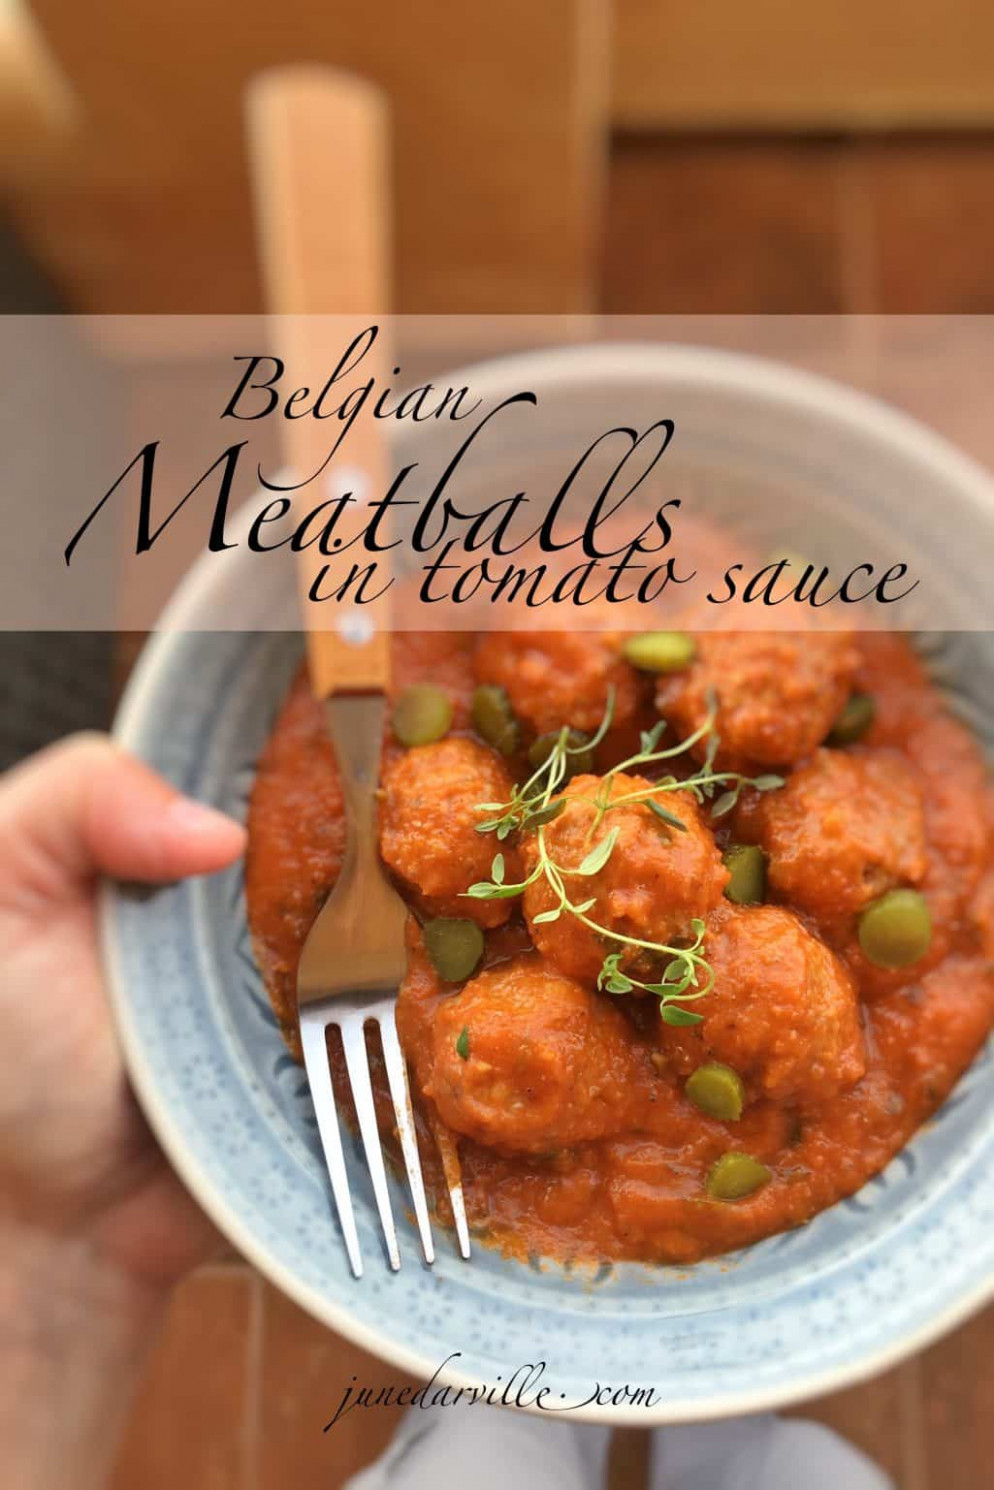 Meatballs In Tomato Sauce - Food Recipes Tasty